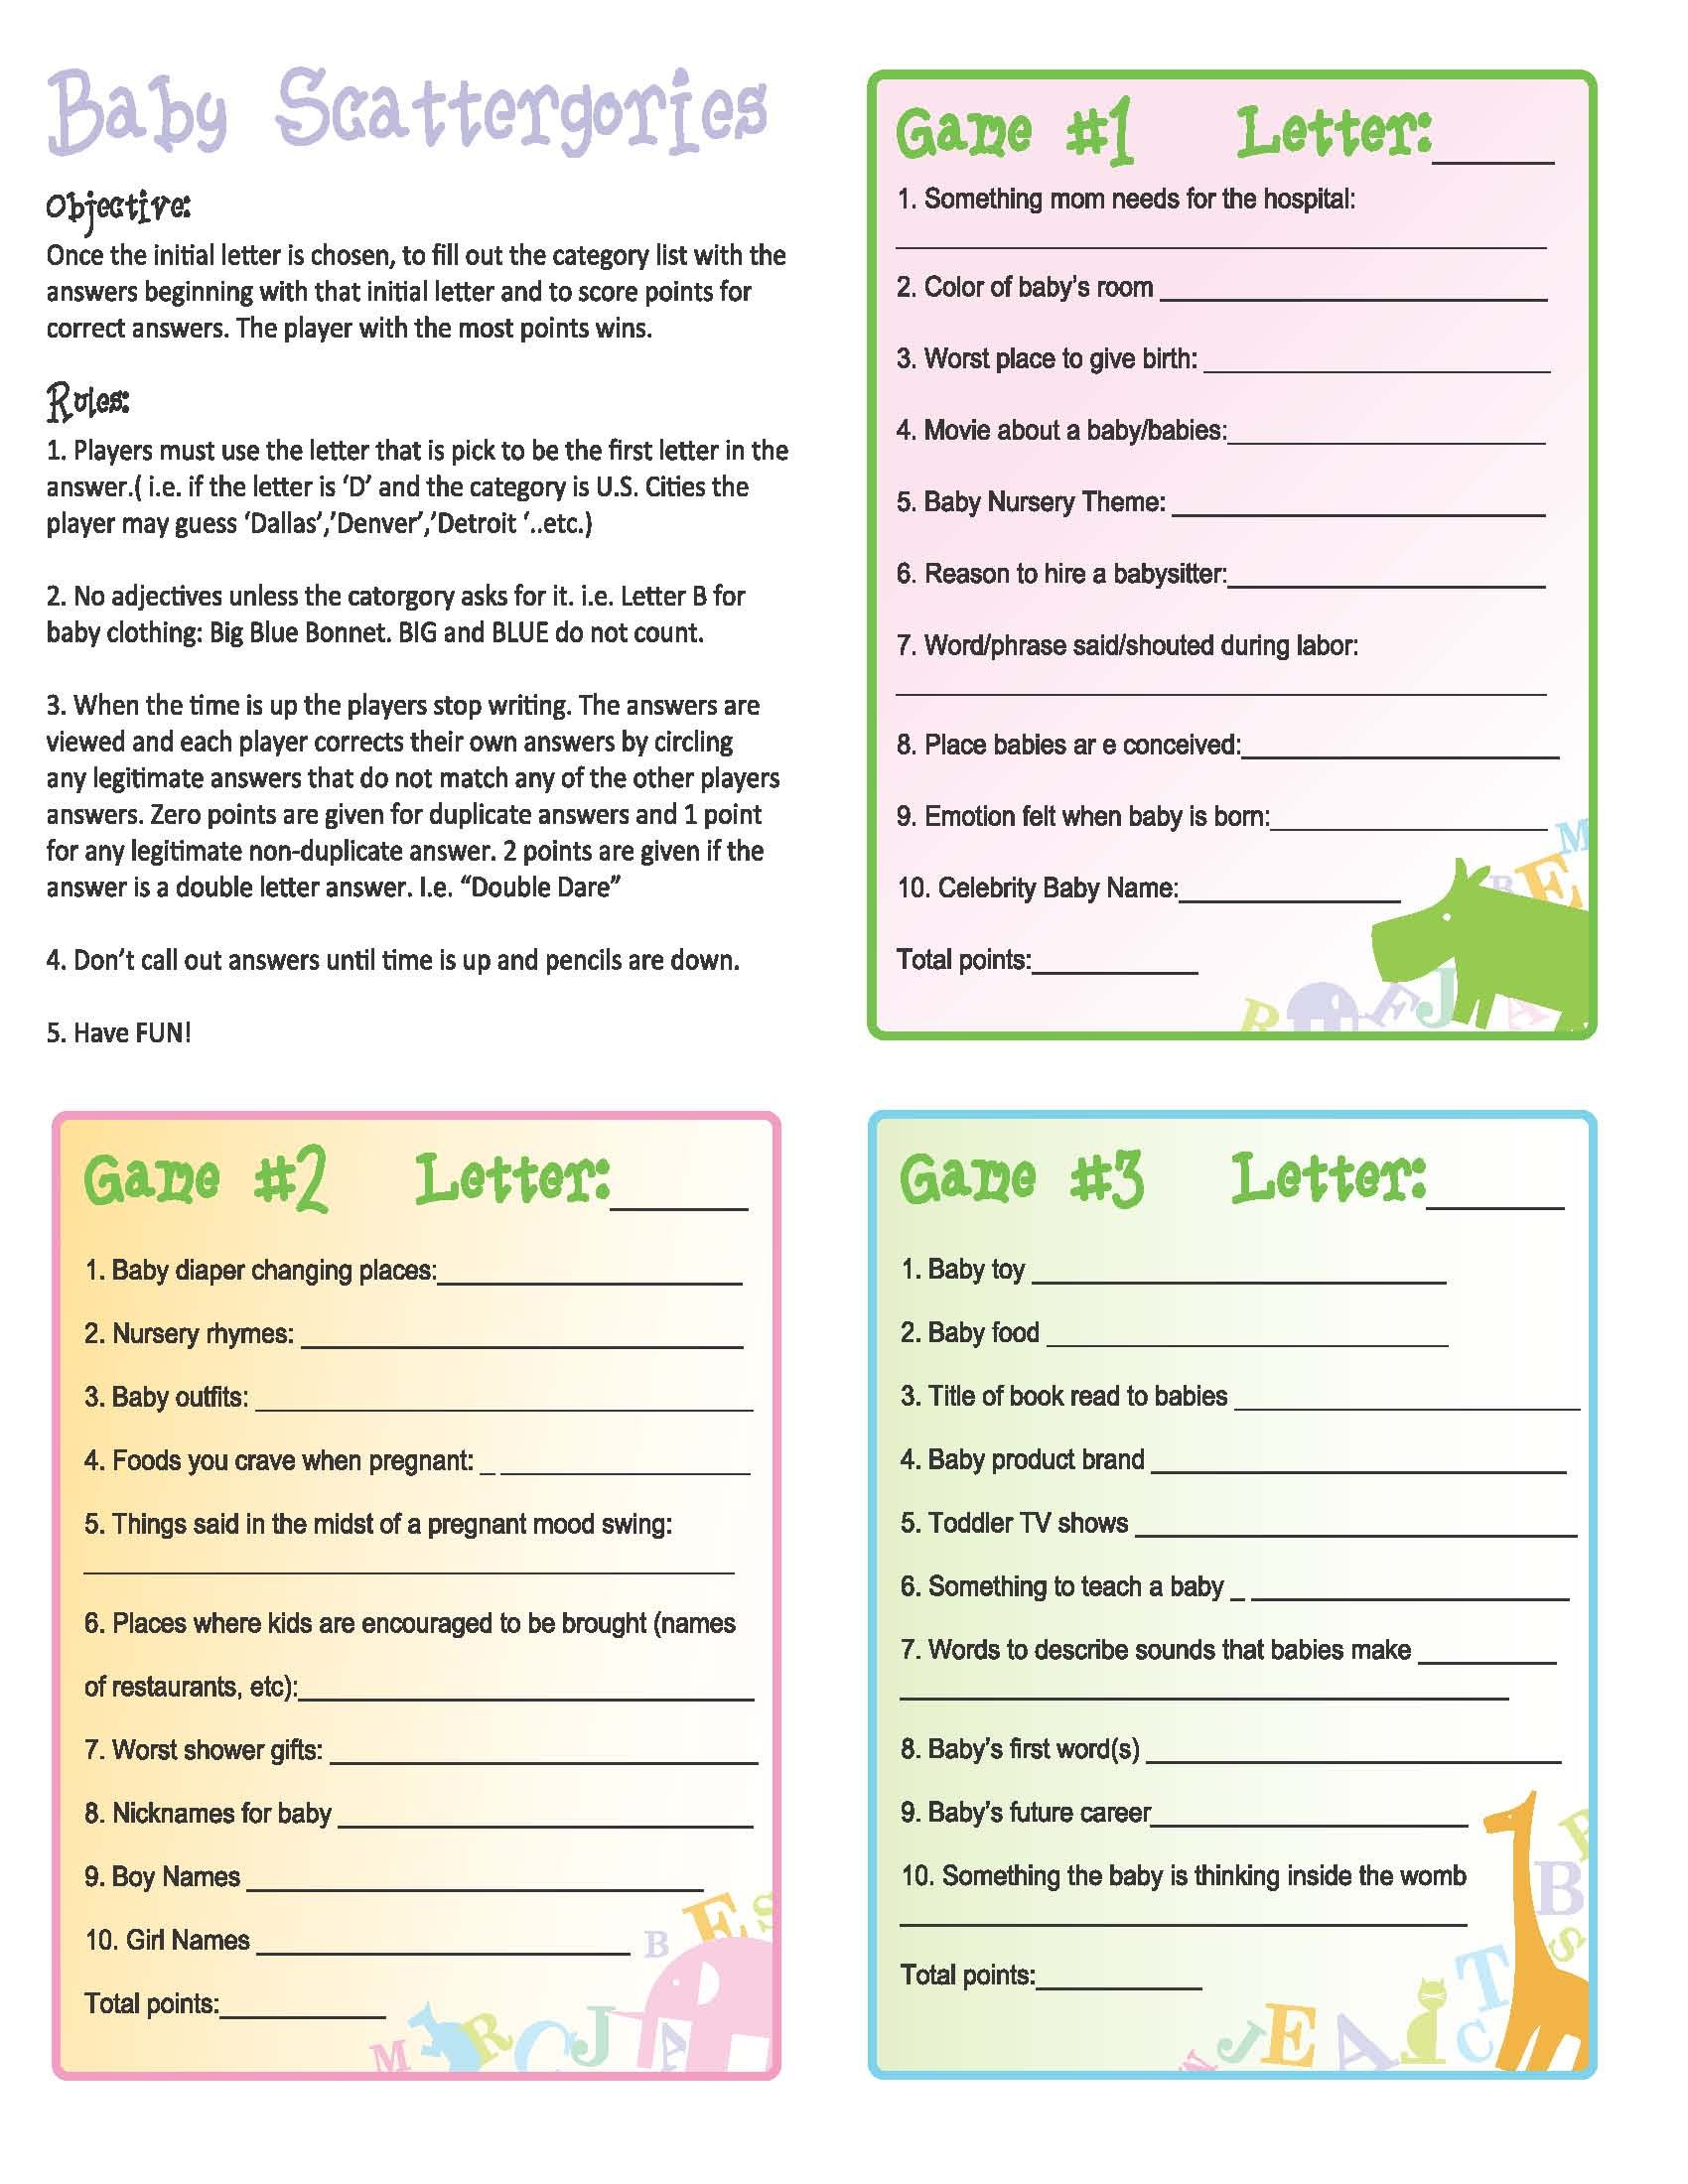 Baby Shower Game Scattergies Use the from the game or the